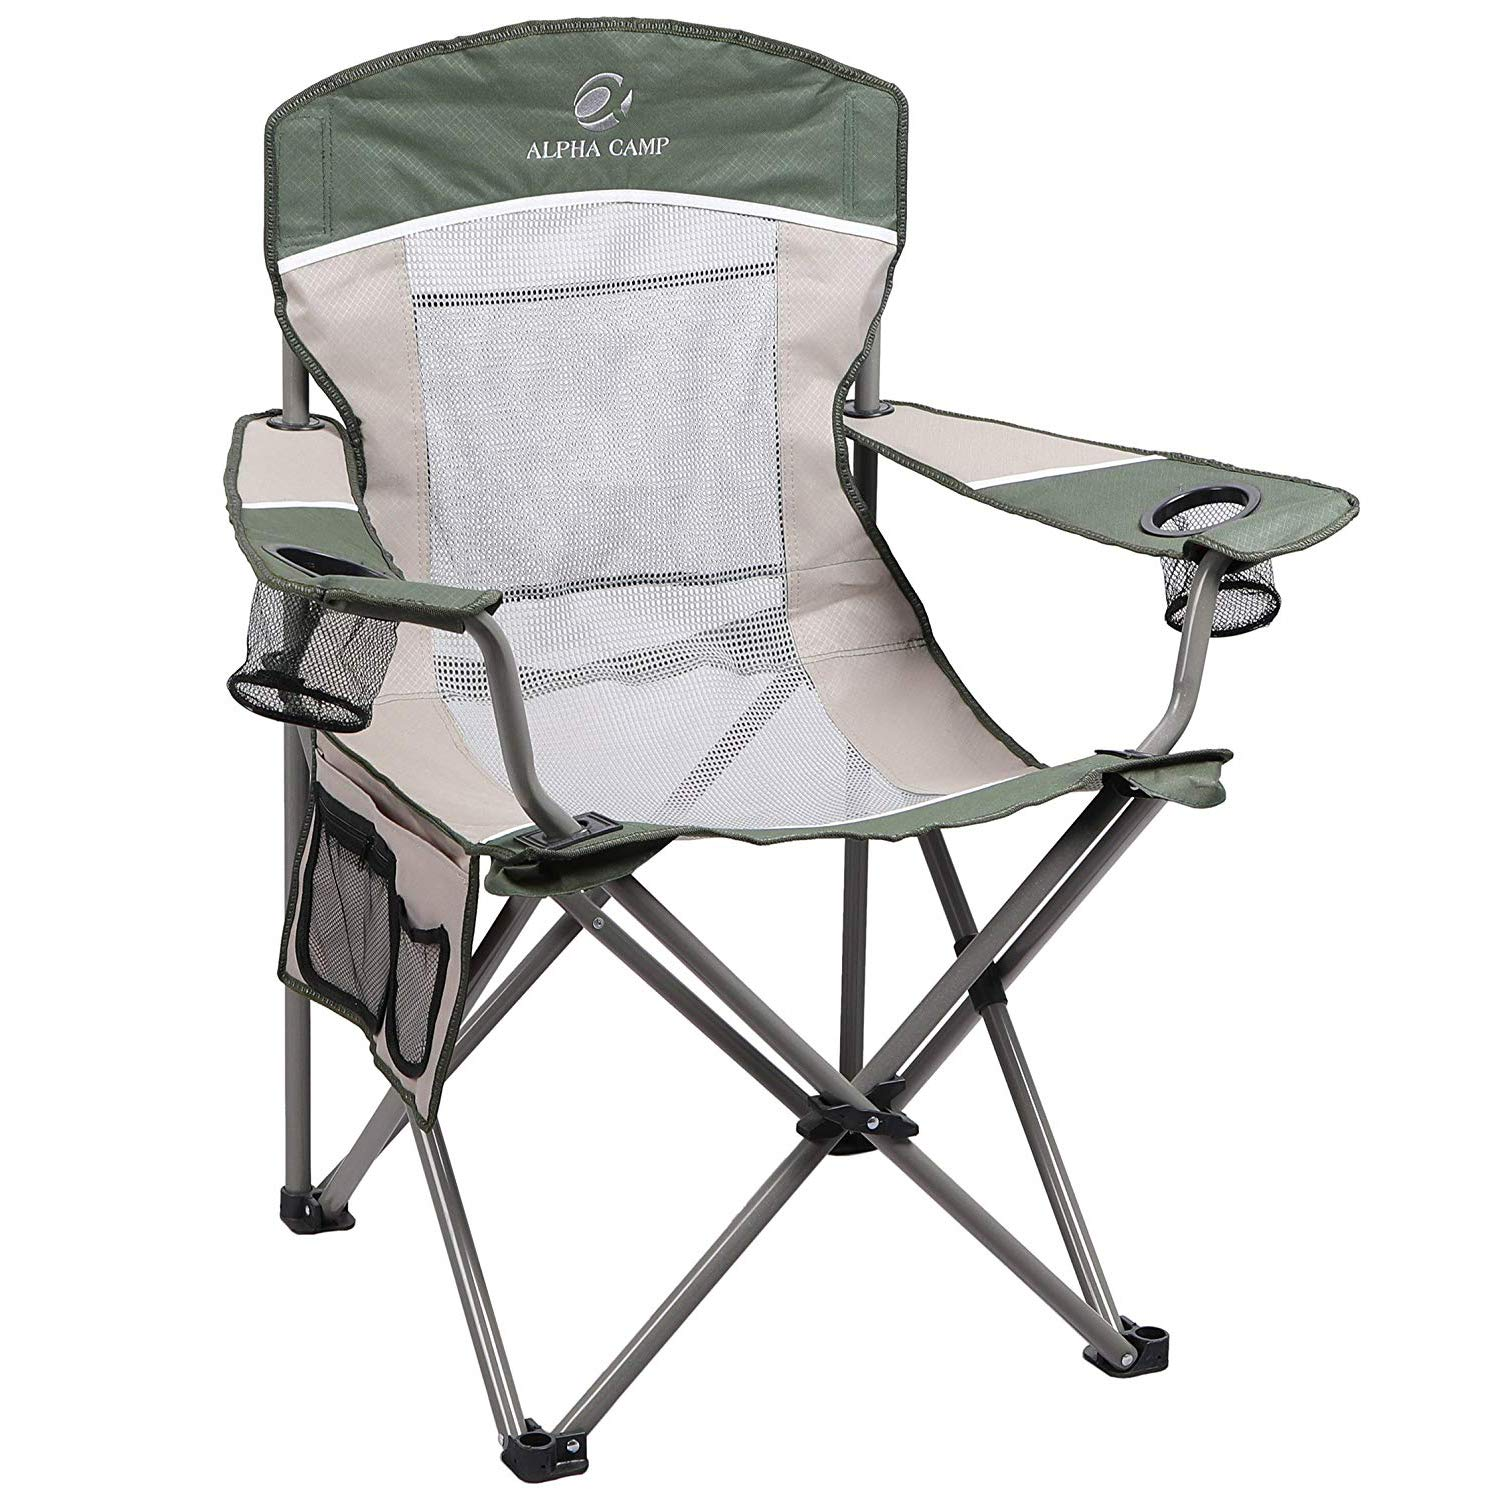 ALPHA CAMP Oversized Mesh Back Camping Folding Chair Heavy Duty Support 350 LBS Collapsible Steel Frame Quad Chair Padded Arm Chair with Cup Holder Portable for Outdoor Green//Brown